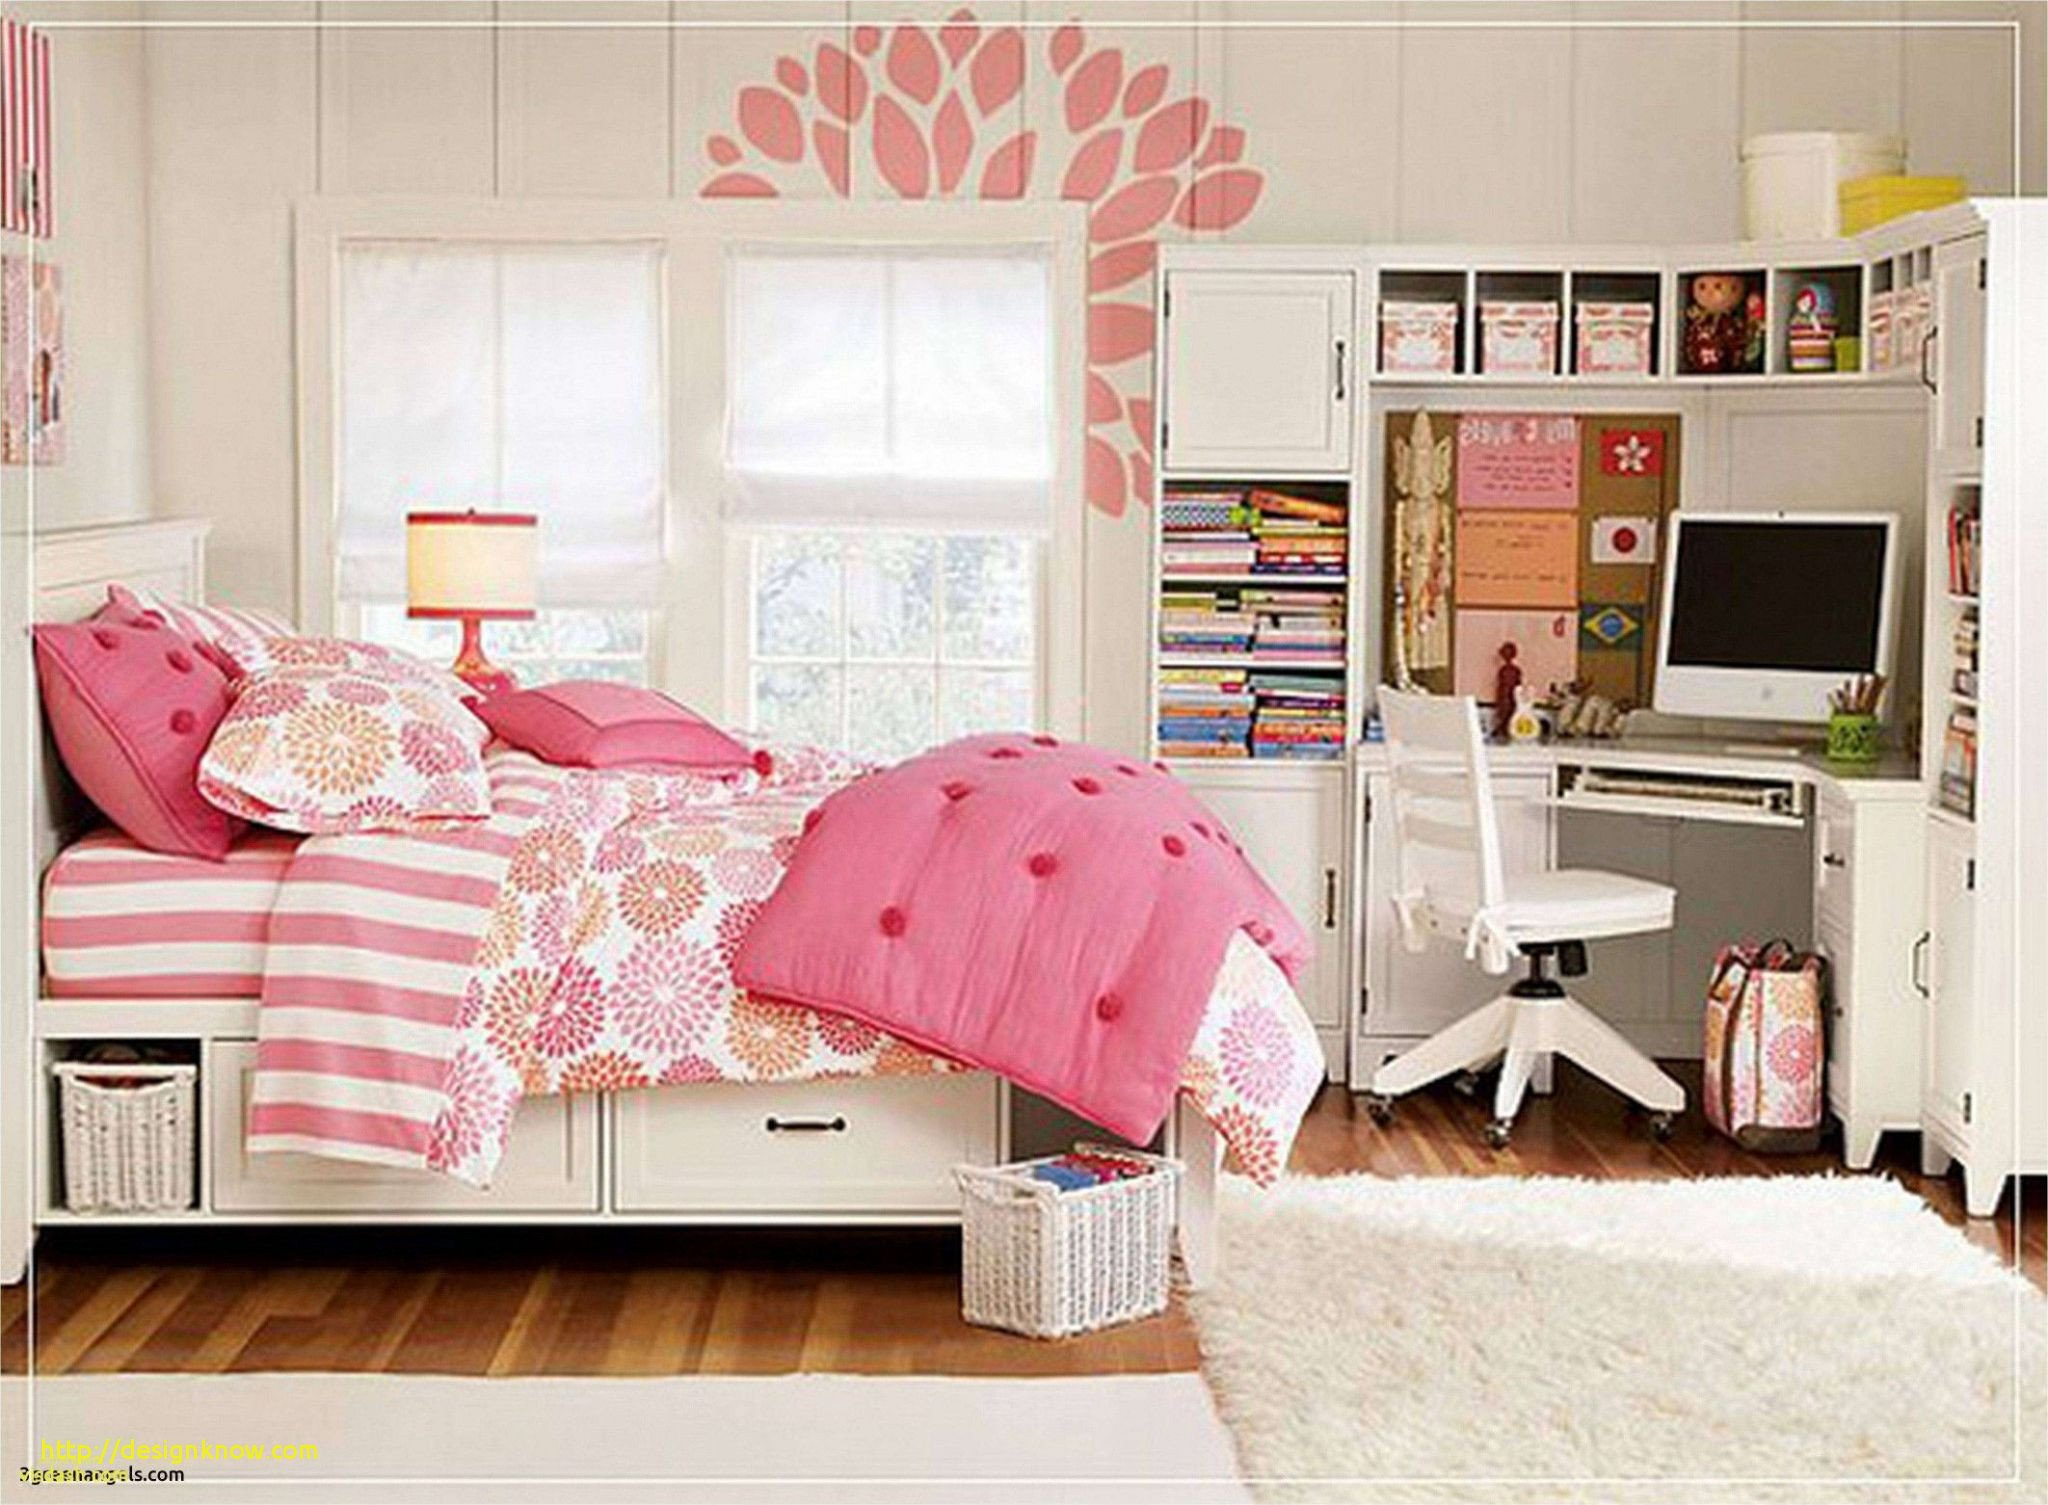 Wall Unit Bedroom Set Luxury Unique Interior Design for Small Size Bedroom